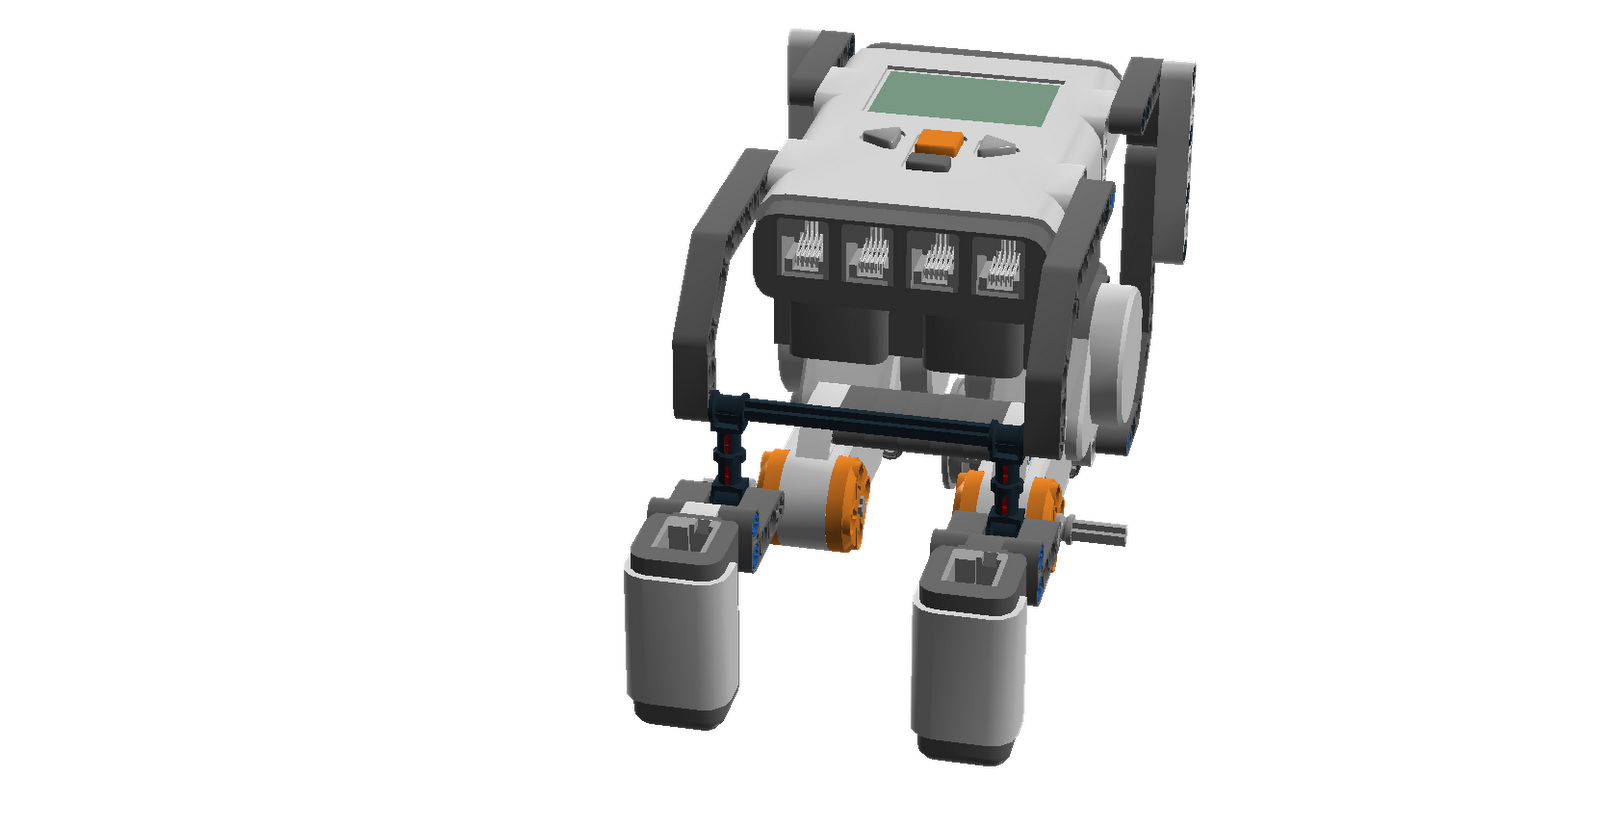 sensor for robots A guide to sensors a crucial aspect of any robotics project is the ability for the robot sense objects around itself, the environmental conditions, or its relative position then report back this information or use it for its own purposes.